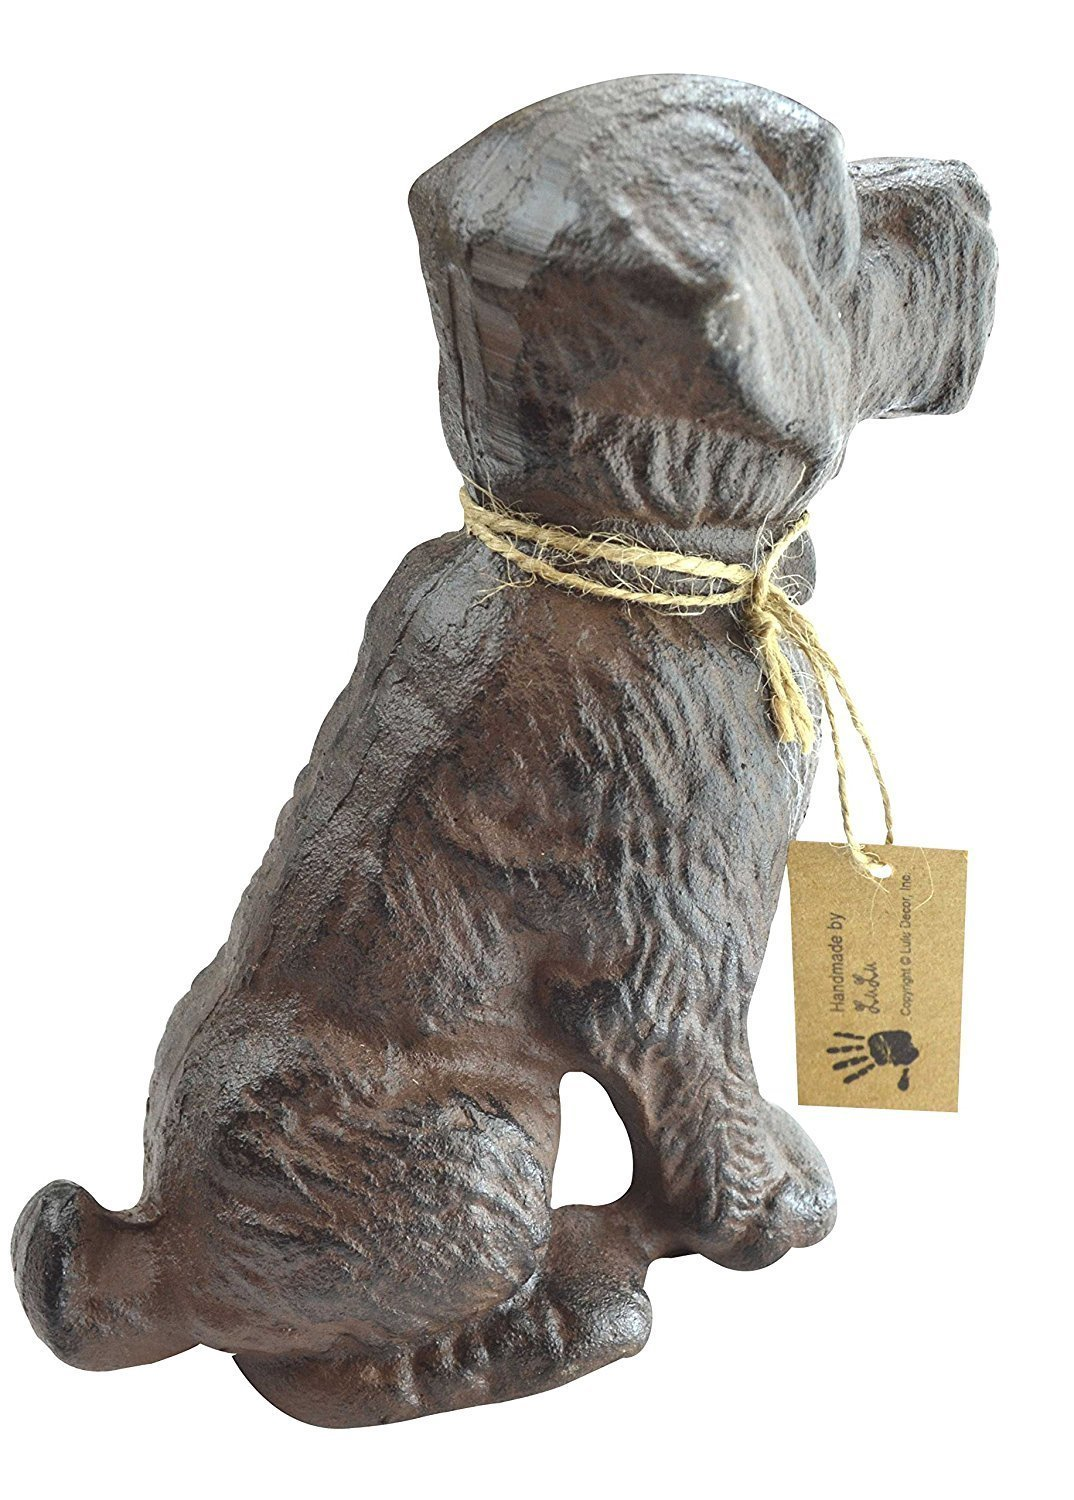 LuLu Decor, 100% Cast Iron Dog Door Stopper, Doorstop, Sculpture, Dog Statue, 6'' Height, Weighs 4.50 lb, Antique Brown (Brown 4.50 lb) by Lulu Decor (Image #1)